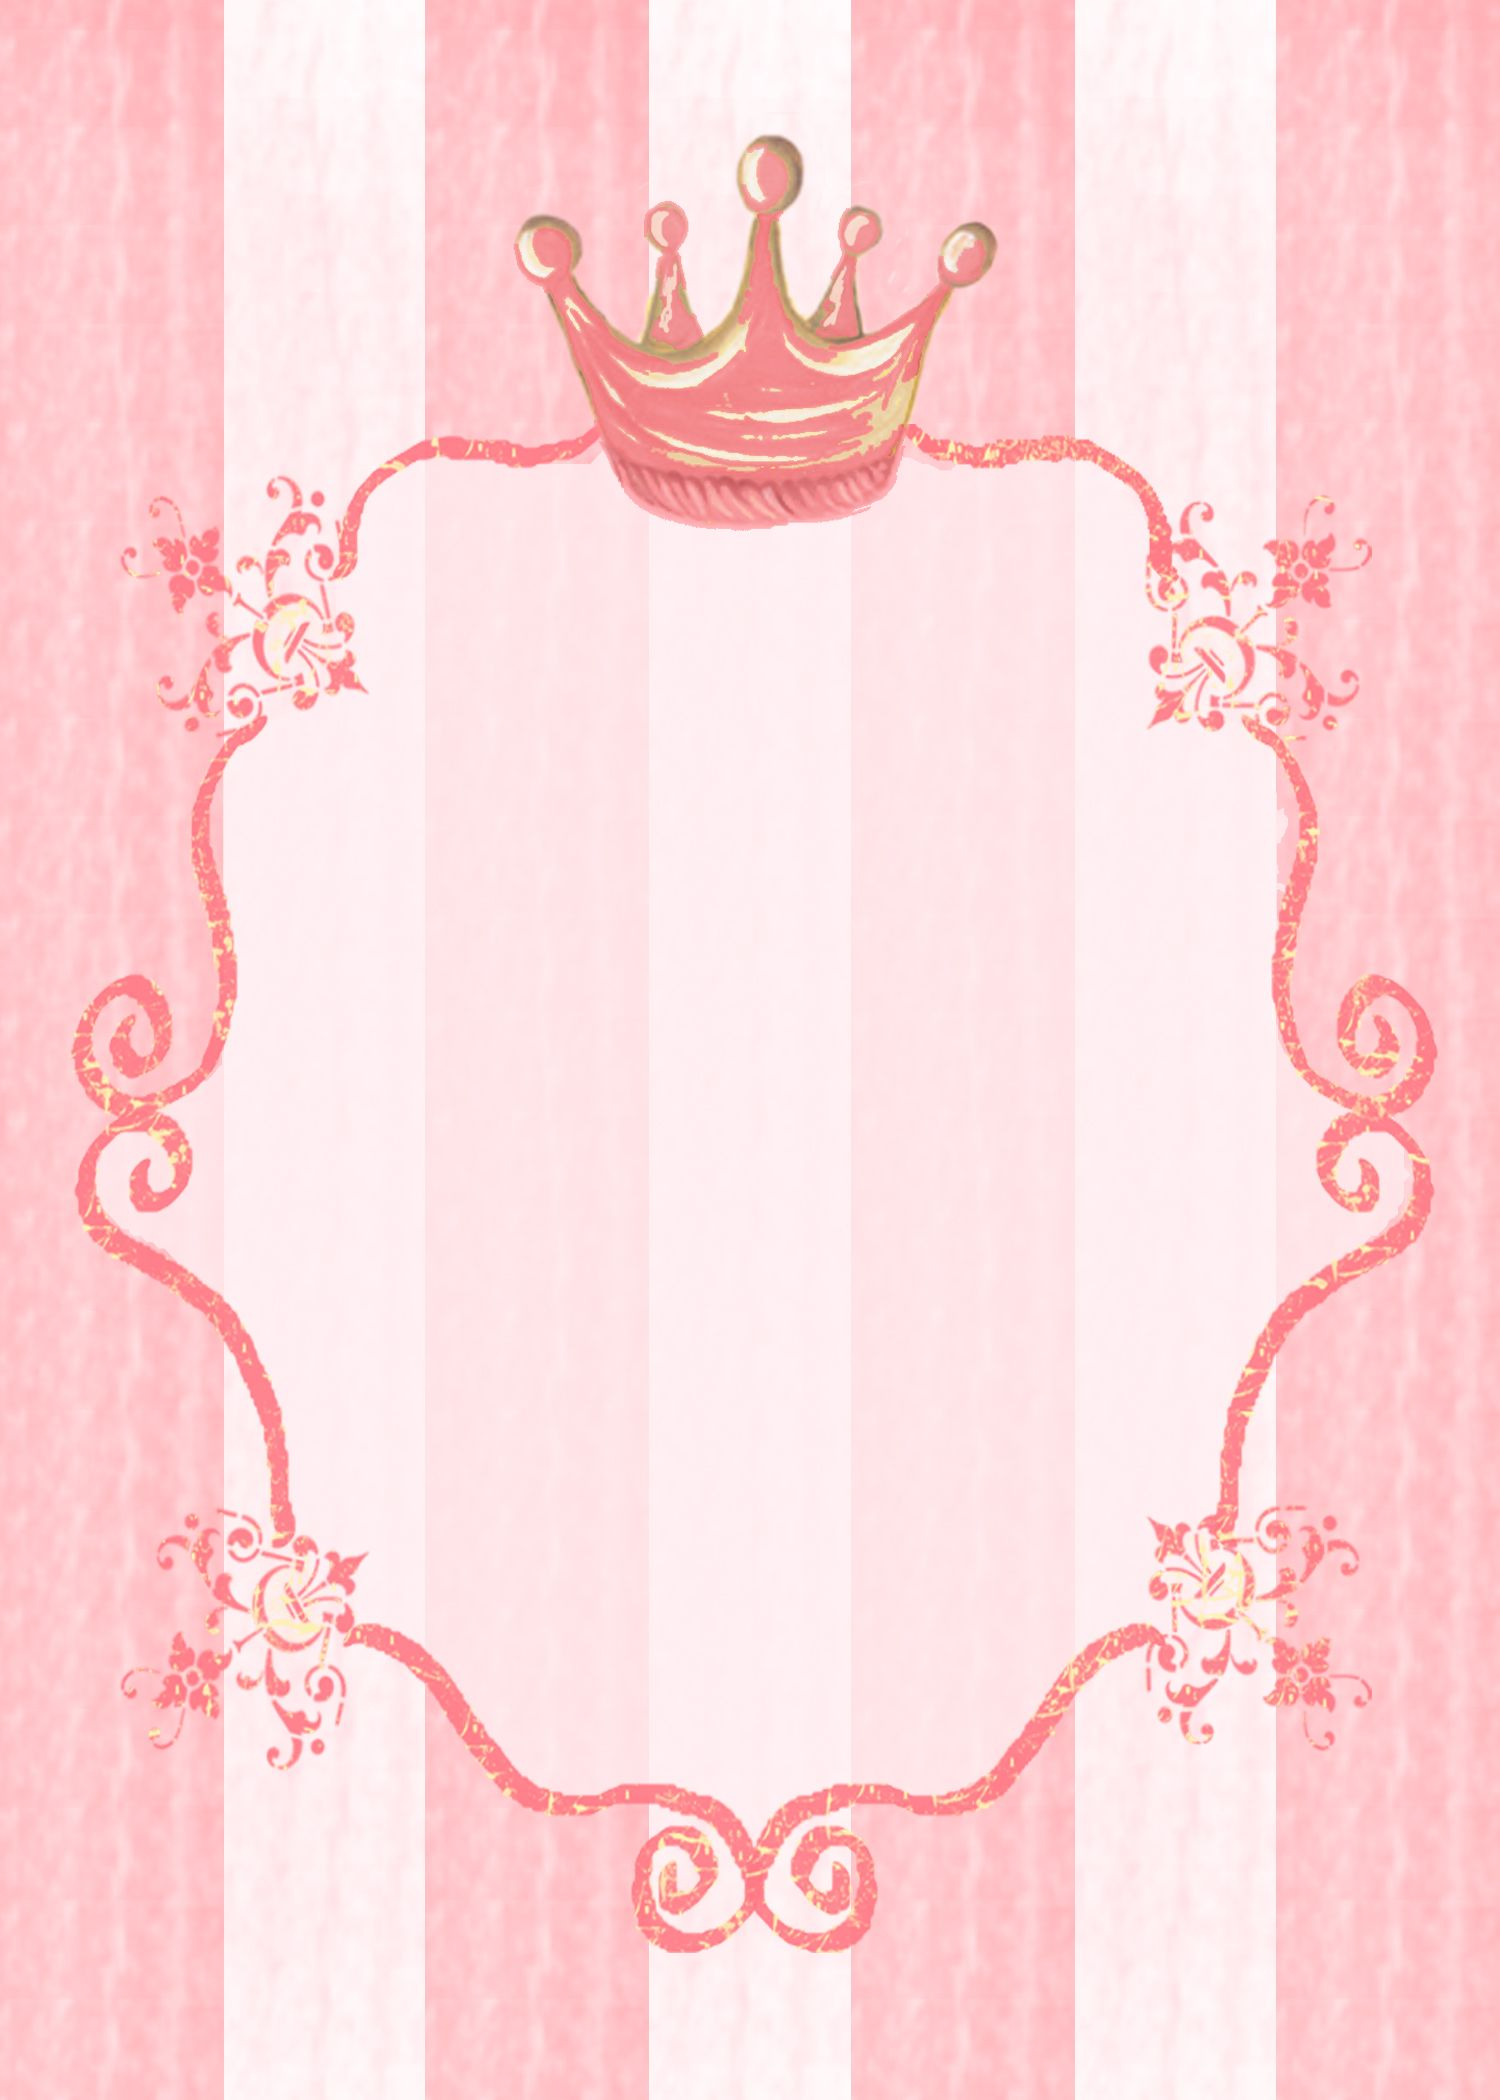 princess party invitation background kids stationery c est chic